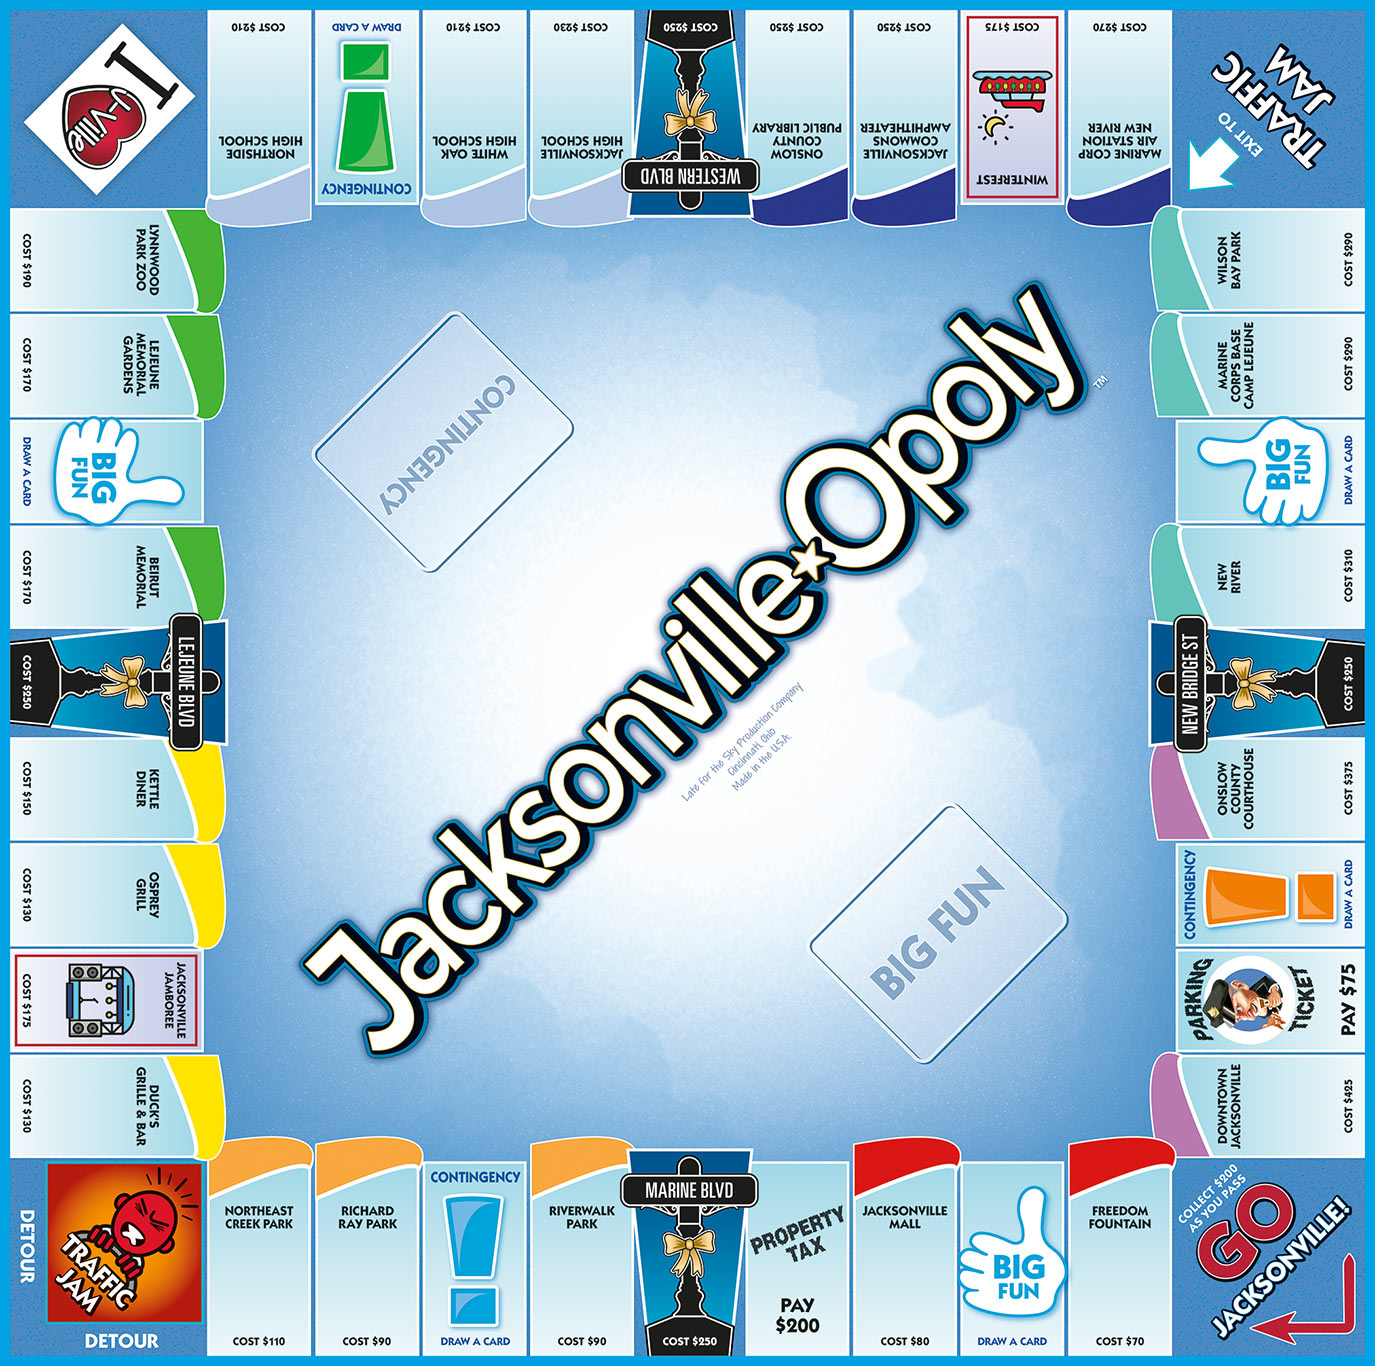 JACKSONVILLE-OPOLY Board Game